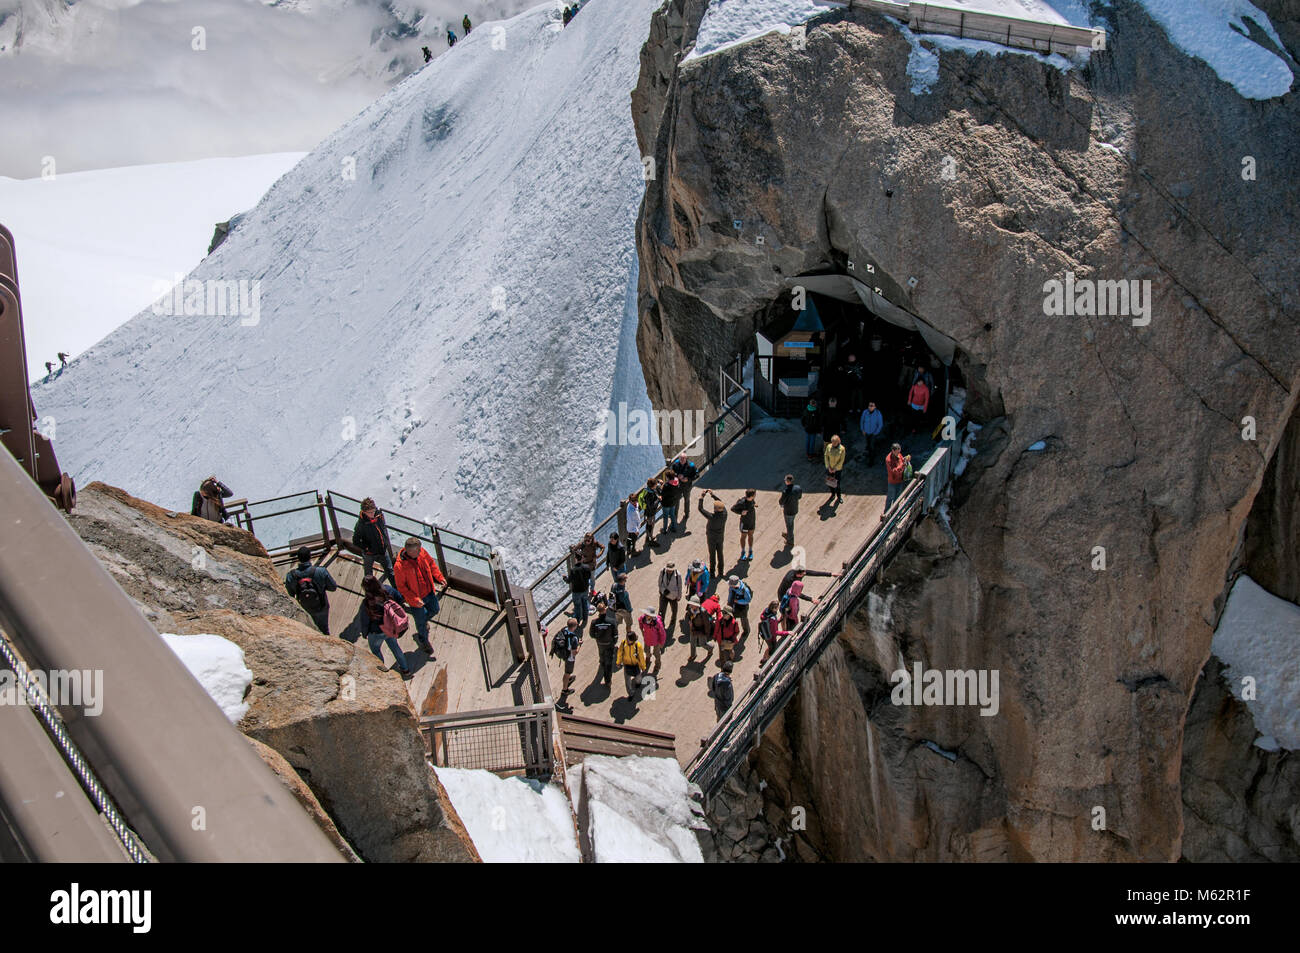 Footbridge between rocky peaks with tourists on the Aiguille du Midi, near Chamonix. A famous ski resort at the Stock Photo